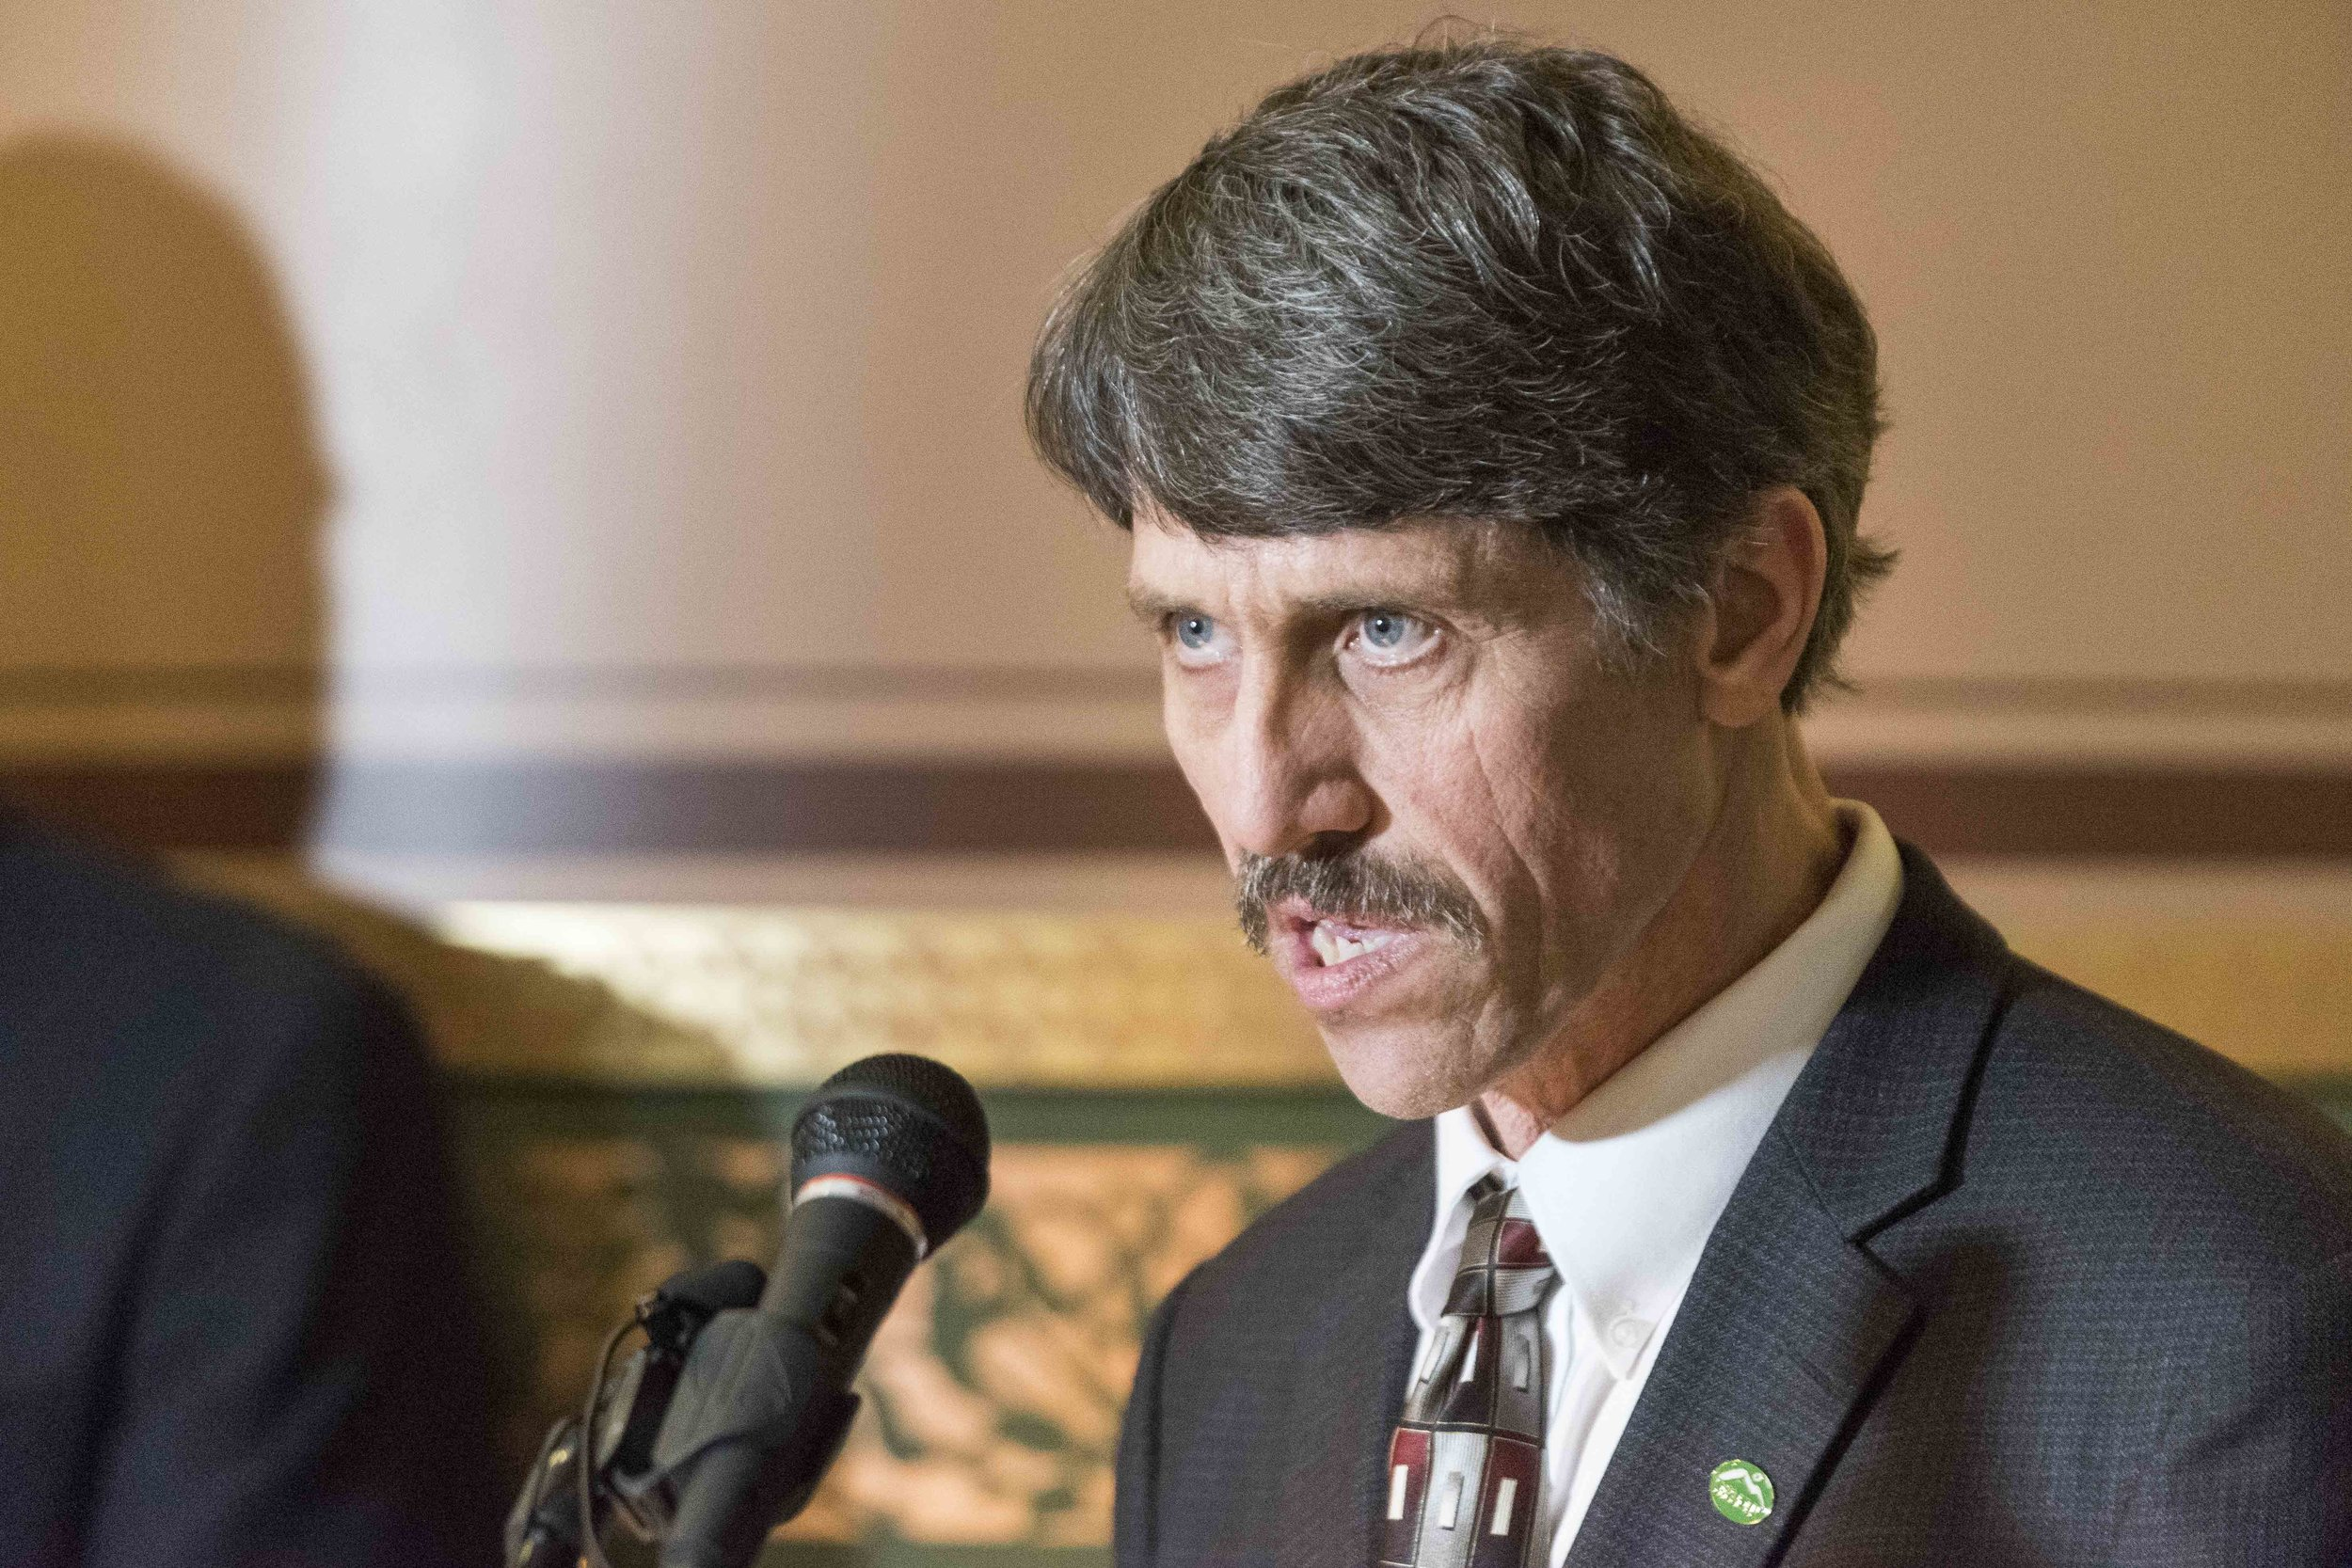 "Senator John Rodgers (D-Essex-Orleans) urges Governor Phil Scott to ""fulfill his campaign promises"" and veto the gun control measures in S.55 during a presser at the State House in Montpelier on April 10th, 2018. Rodgers also apologized for his remarks on the floor the previous week, saying it was not his intention to be divisive."